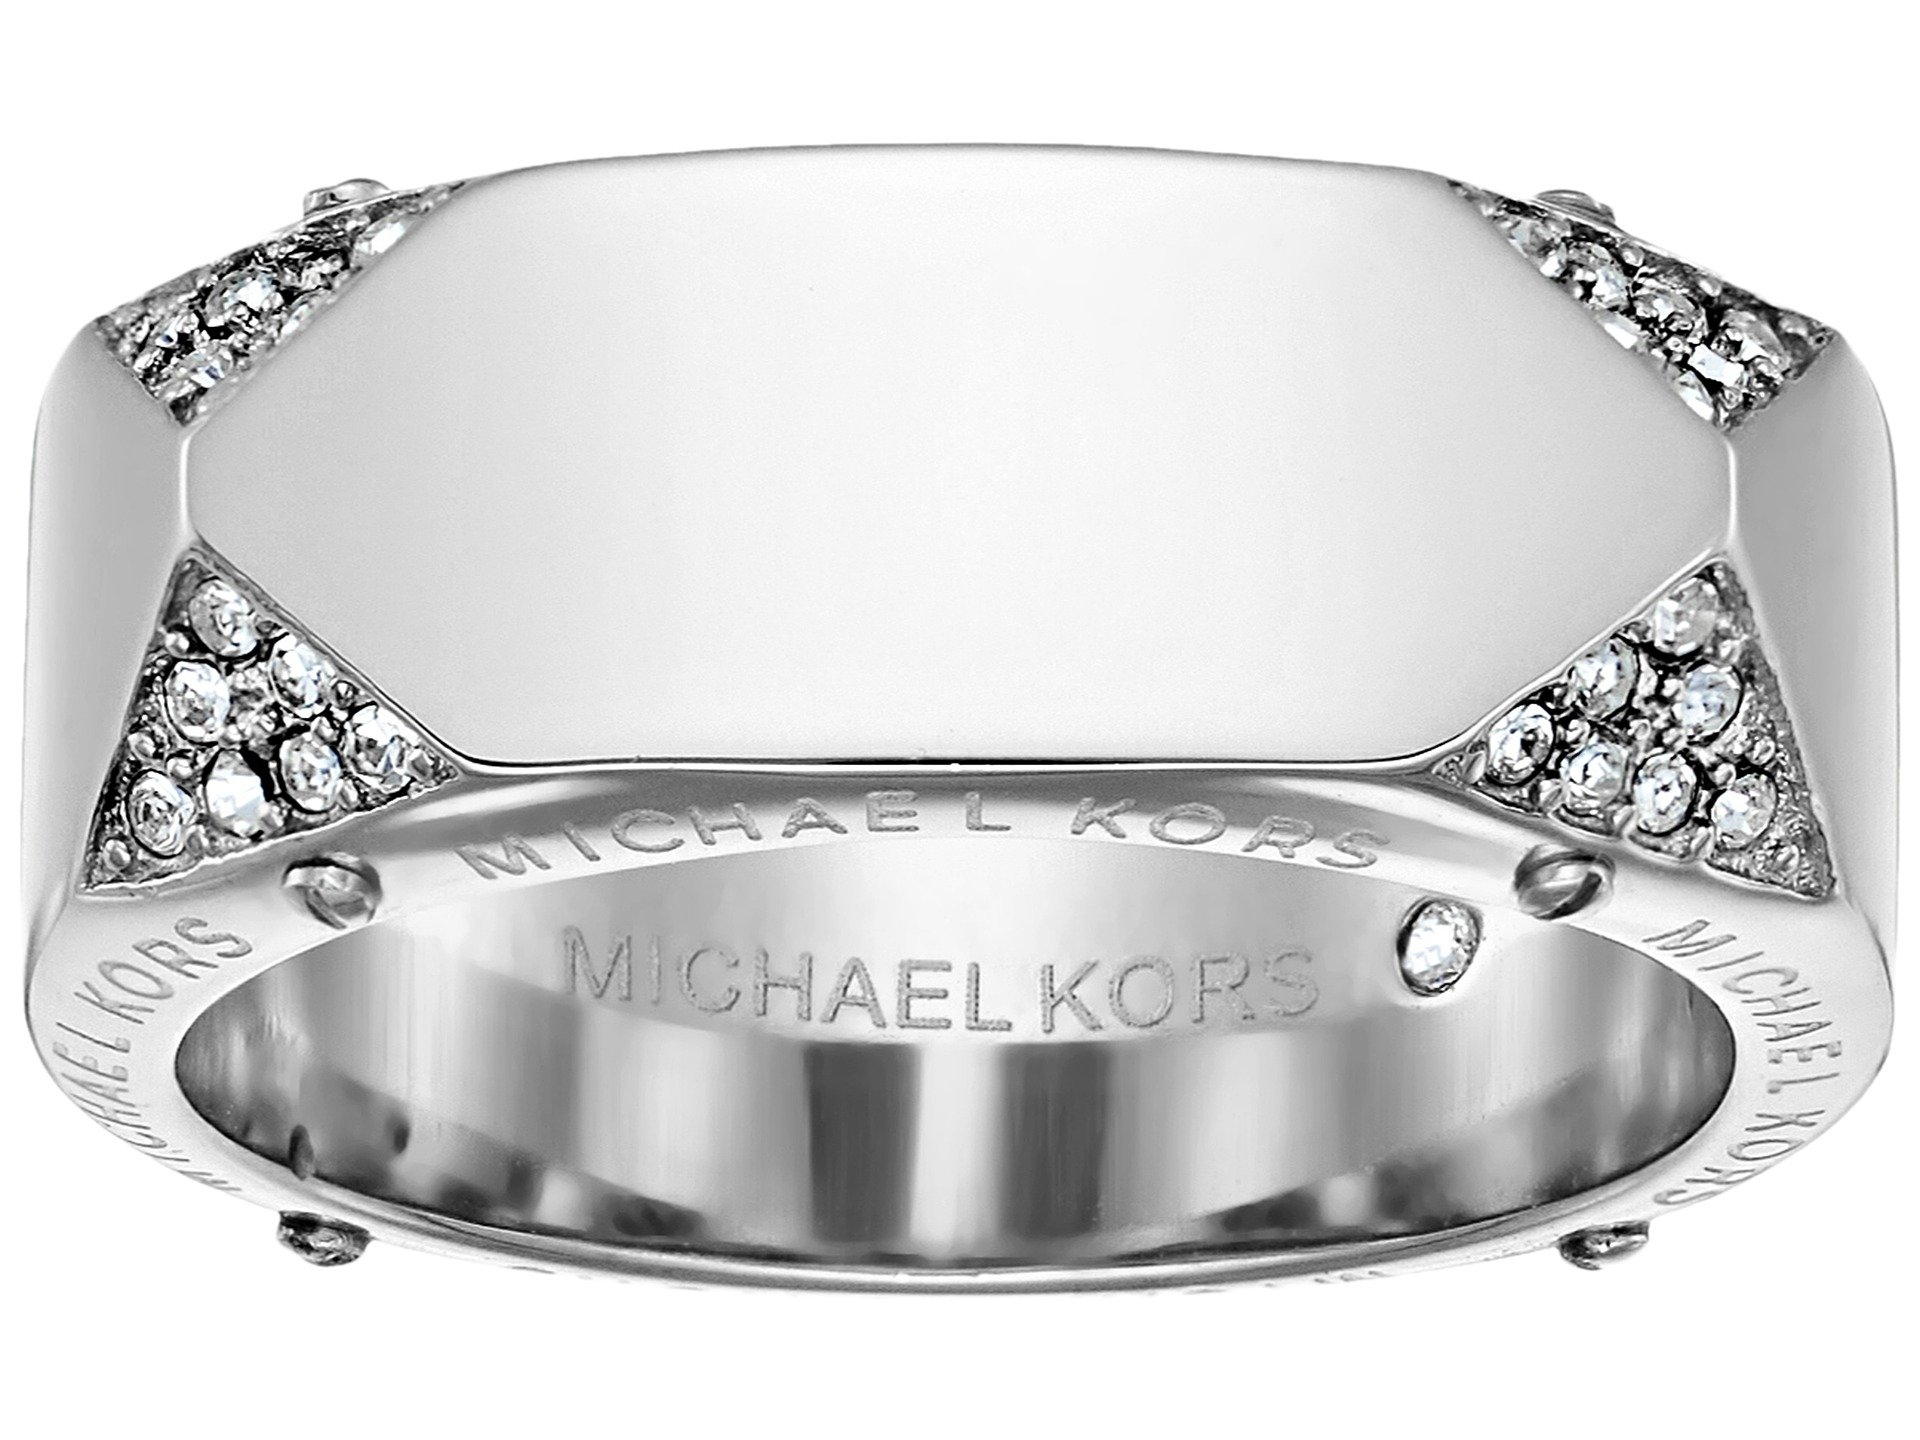 michael kors brilliance banded ring with logo and pave. Black Bedroom Furniture Sets. Home Design Ideas